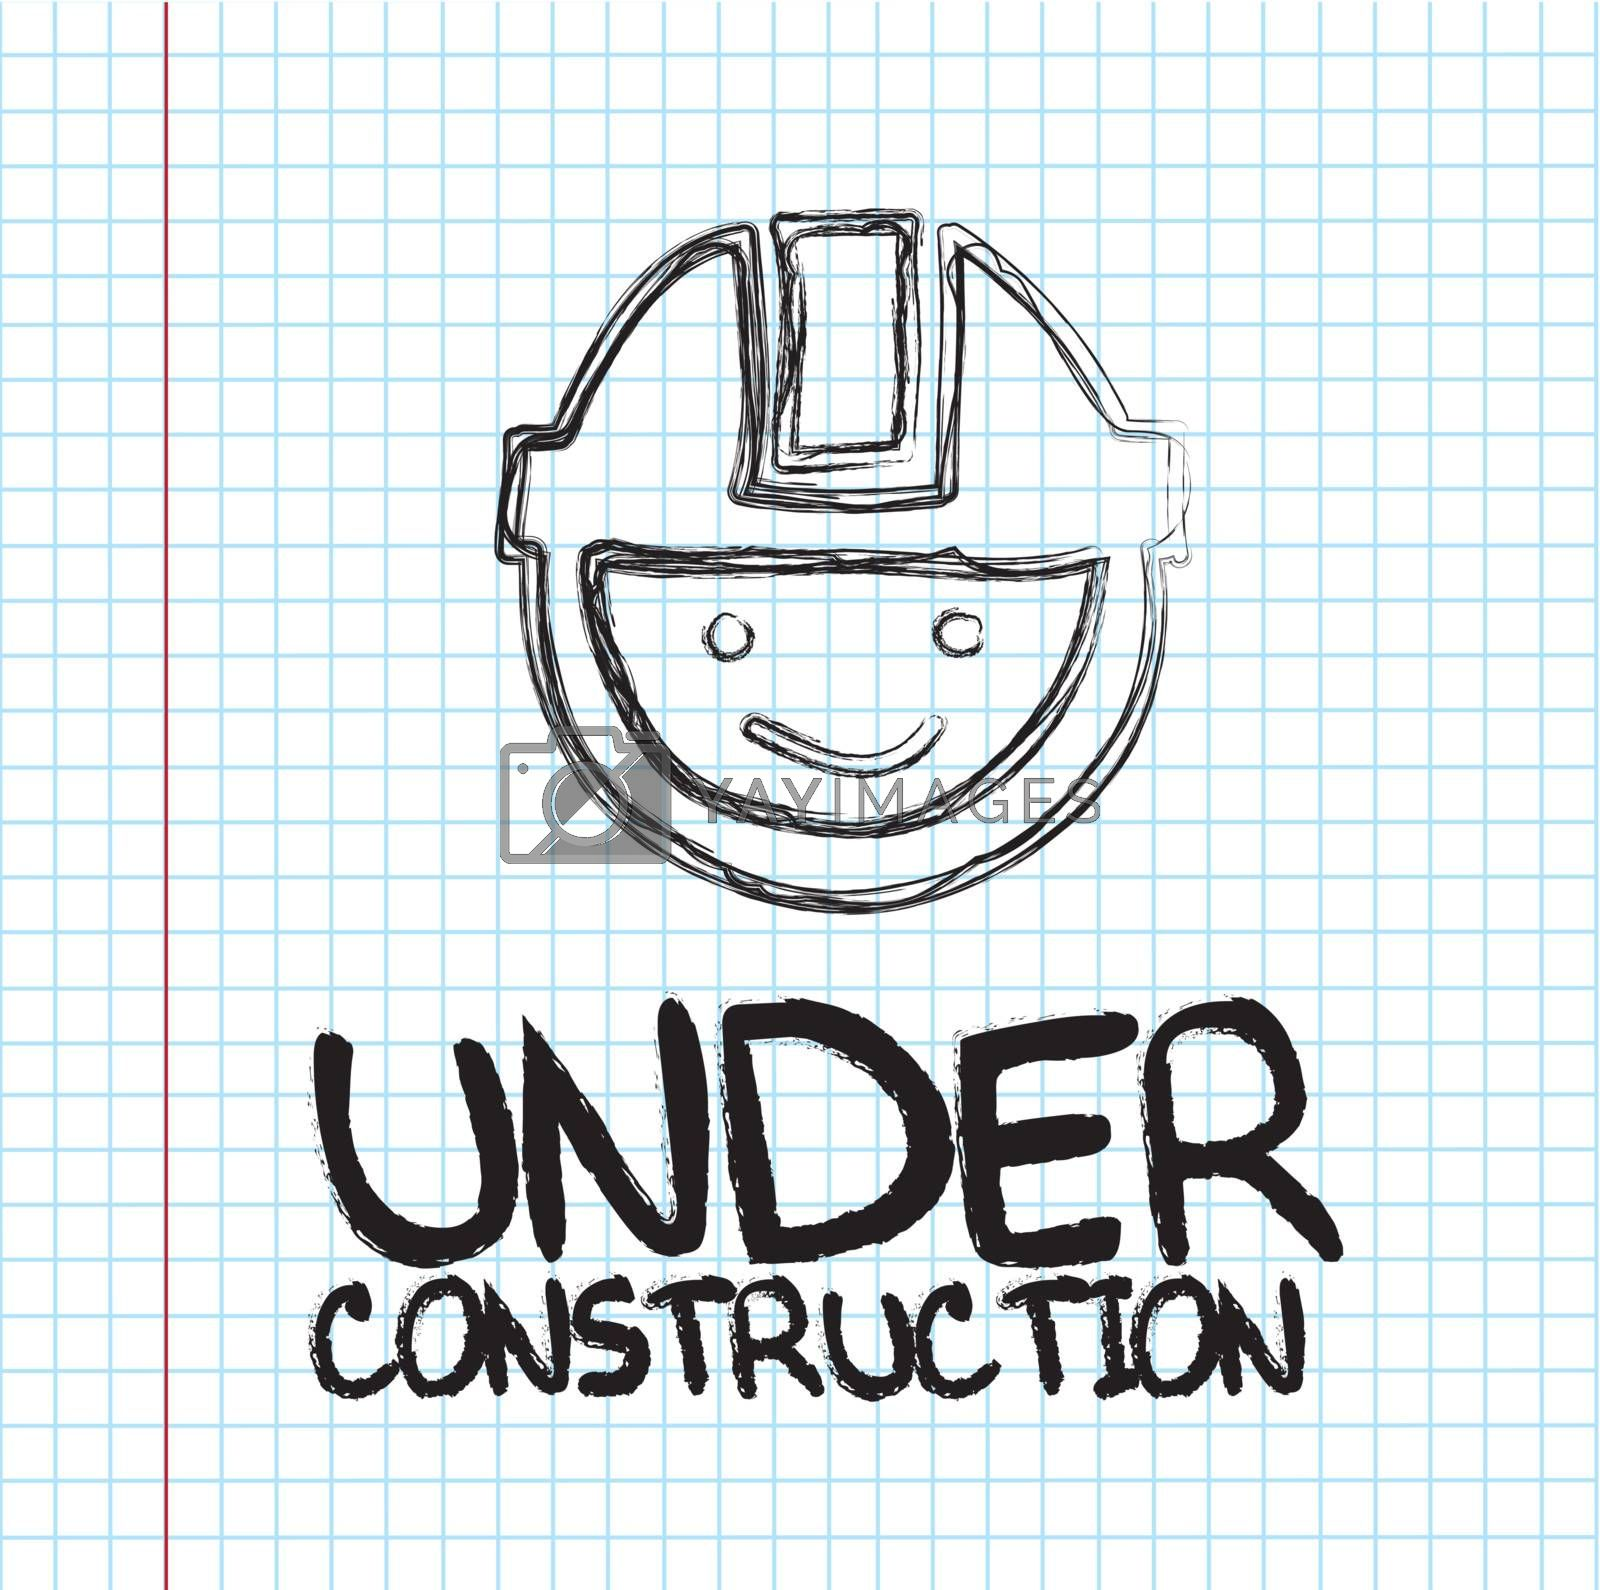 Under construction face over paper background vector illustration